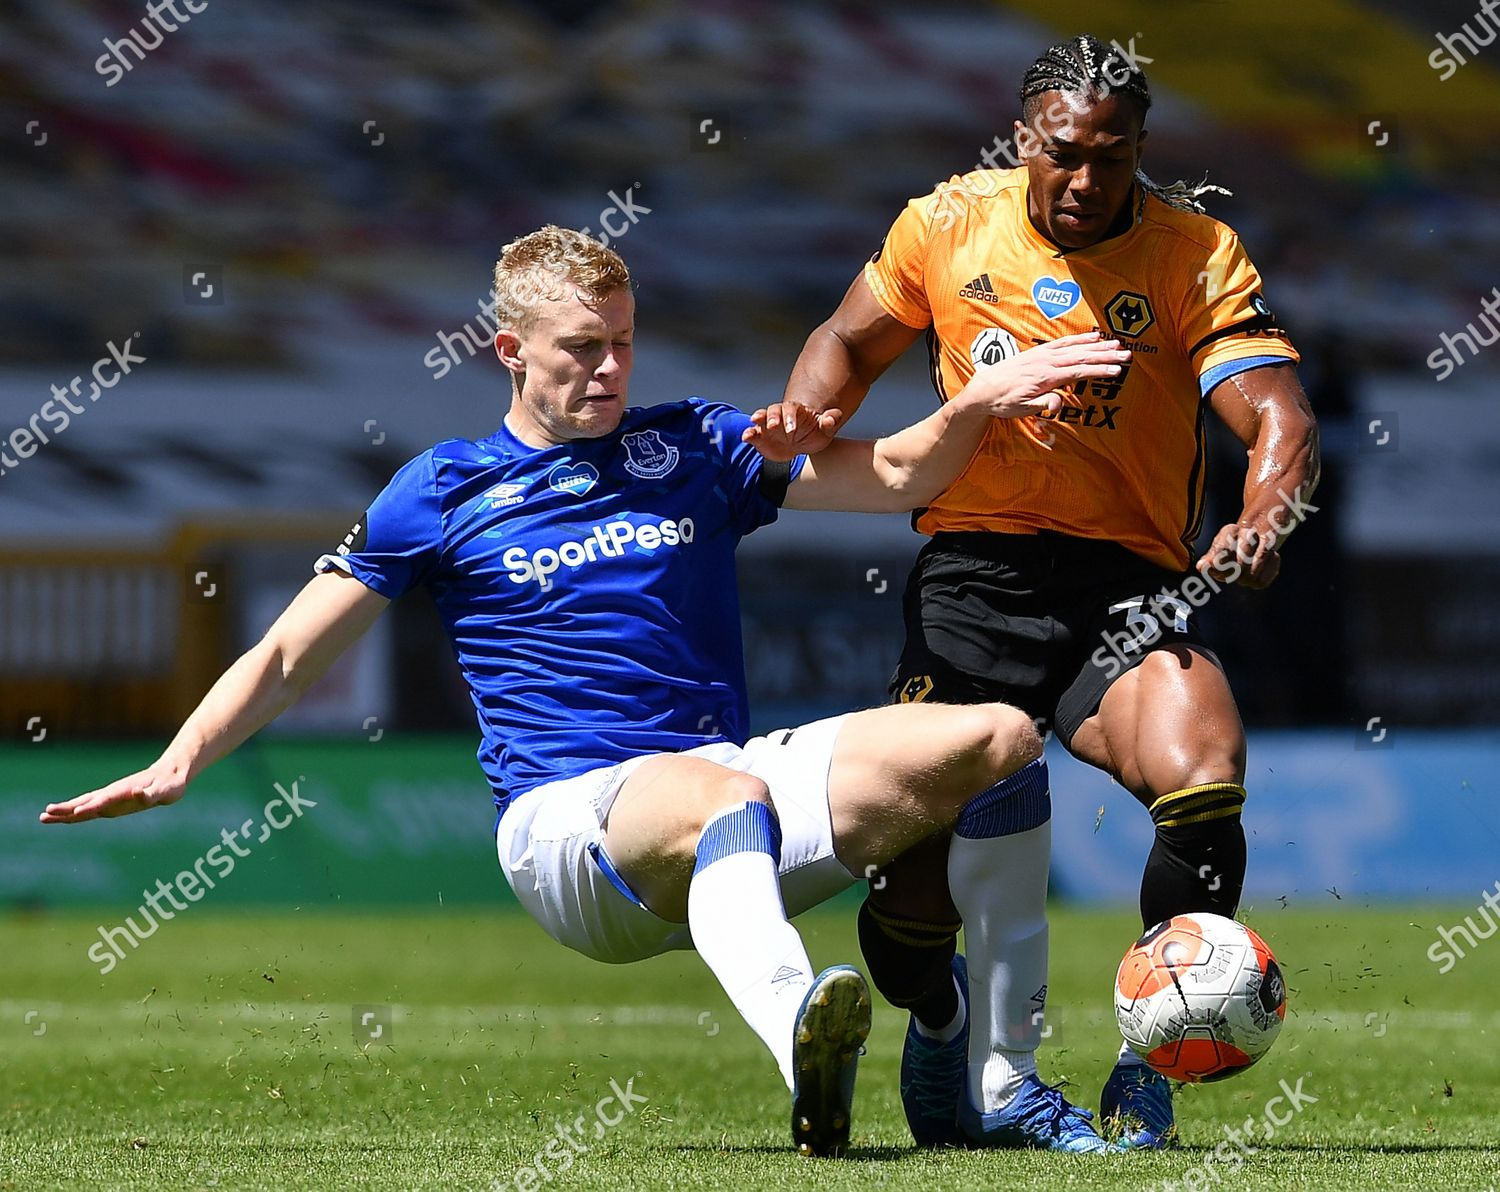 Stock-foto af Wolverhampton Wanderers vs Everton FC, United Kingdom - 12 Jul 2020